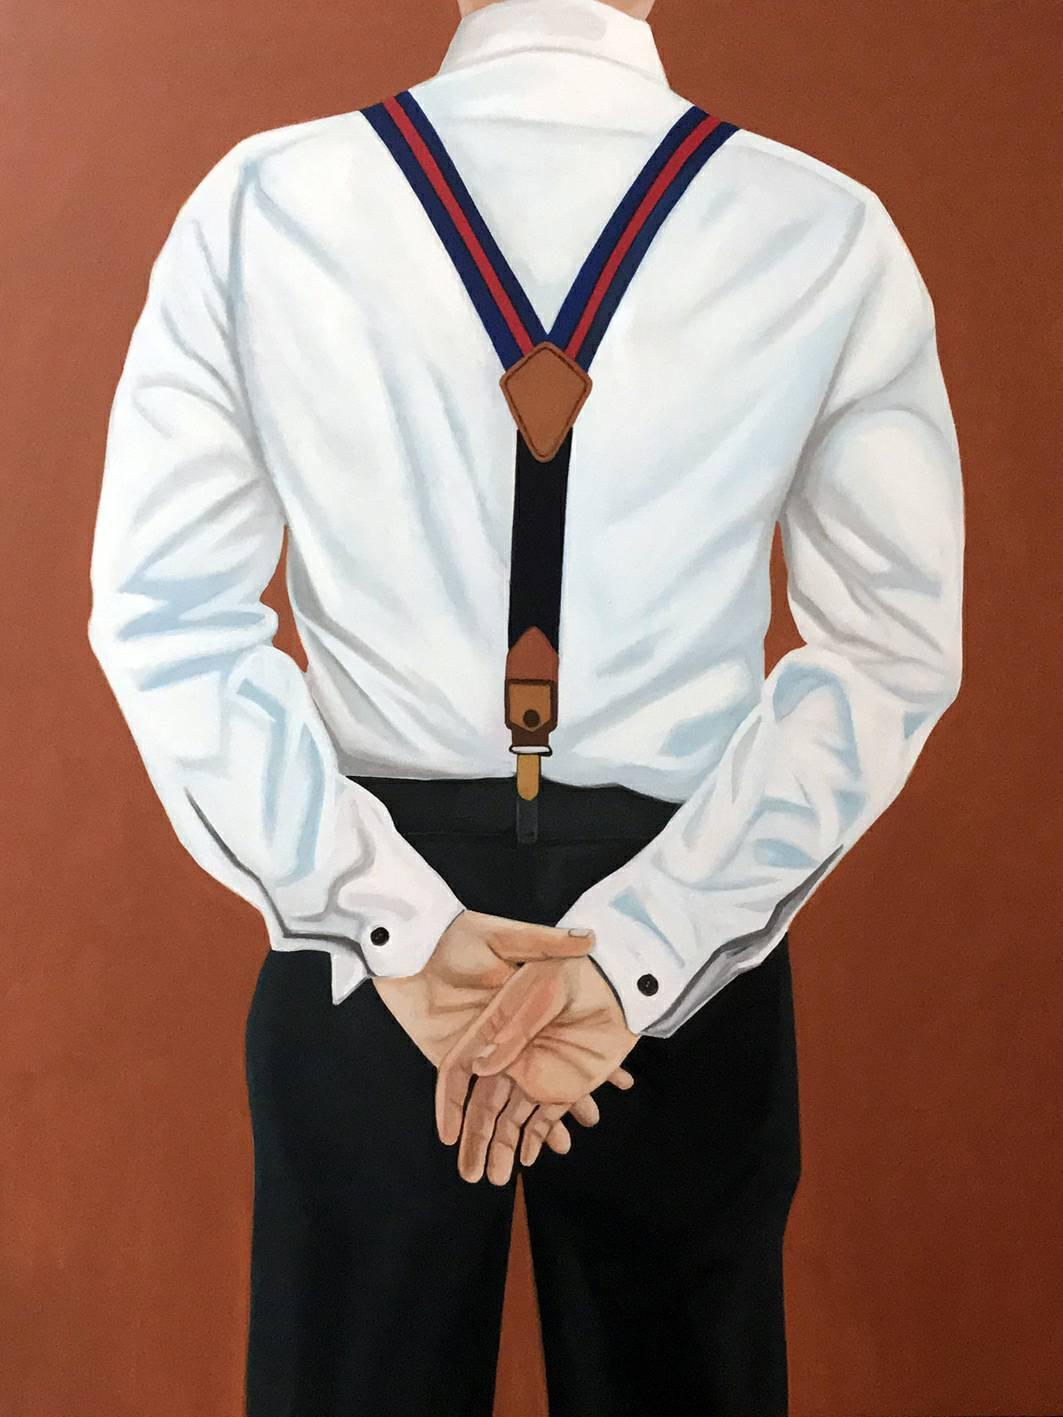 Self Portrait with Suspenders, Oil on canvas, 120 x 90 cm, 2019